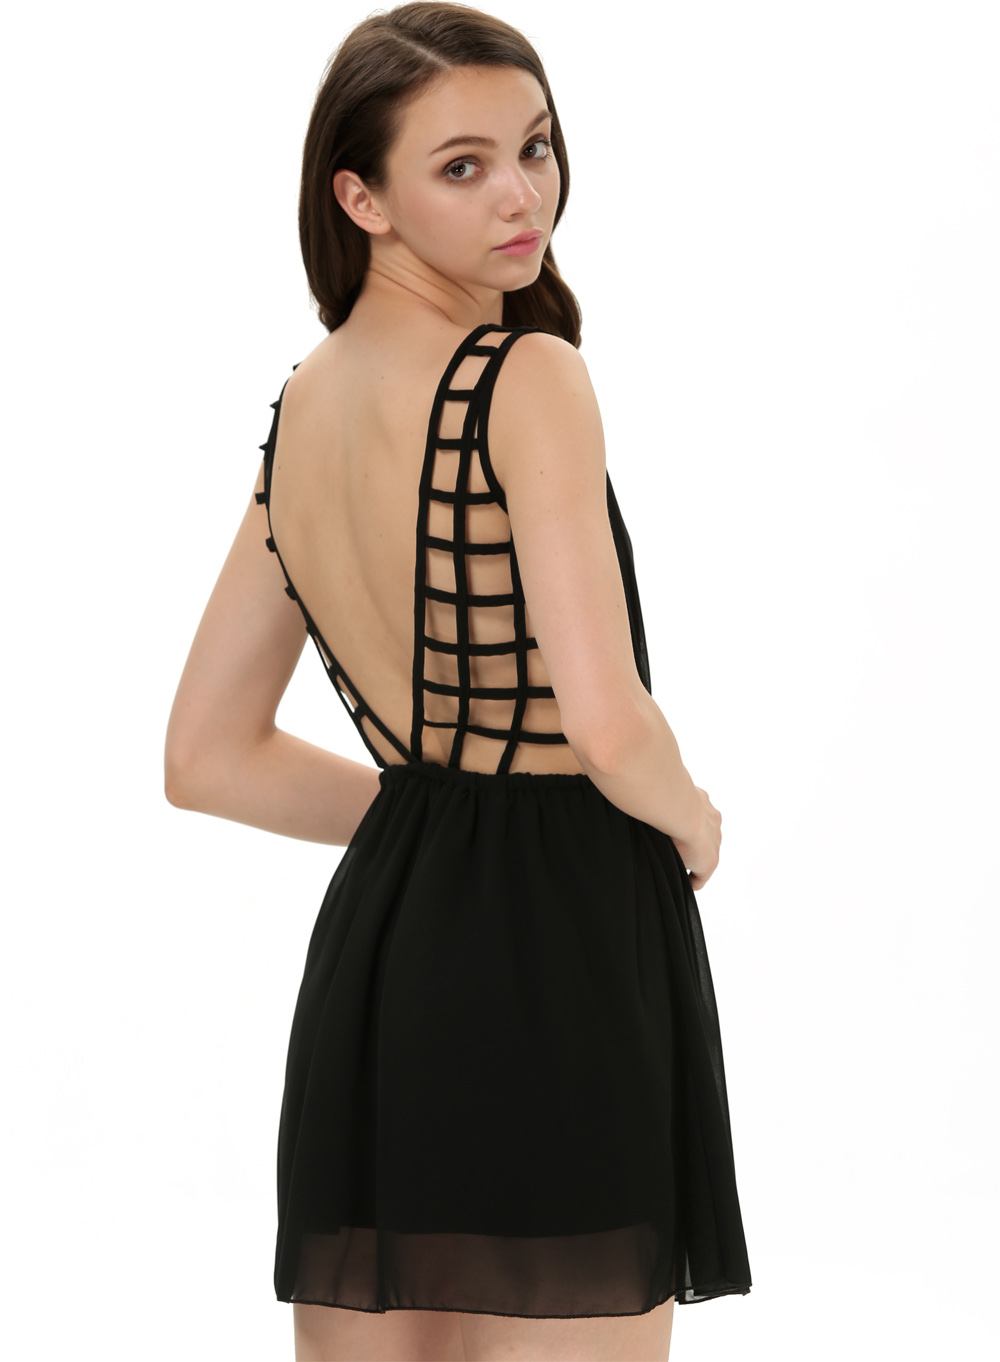 Dresses with cutouts appropriate to wear as a wedding guest? (POLL ...